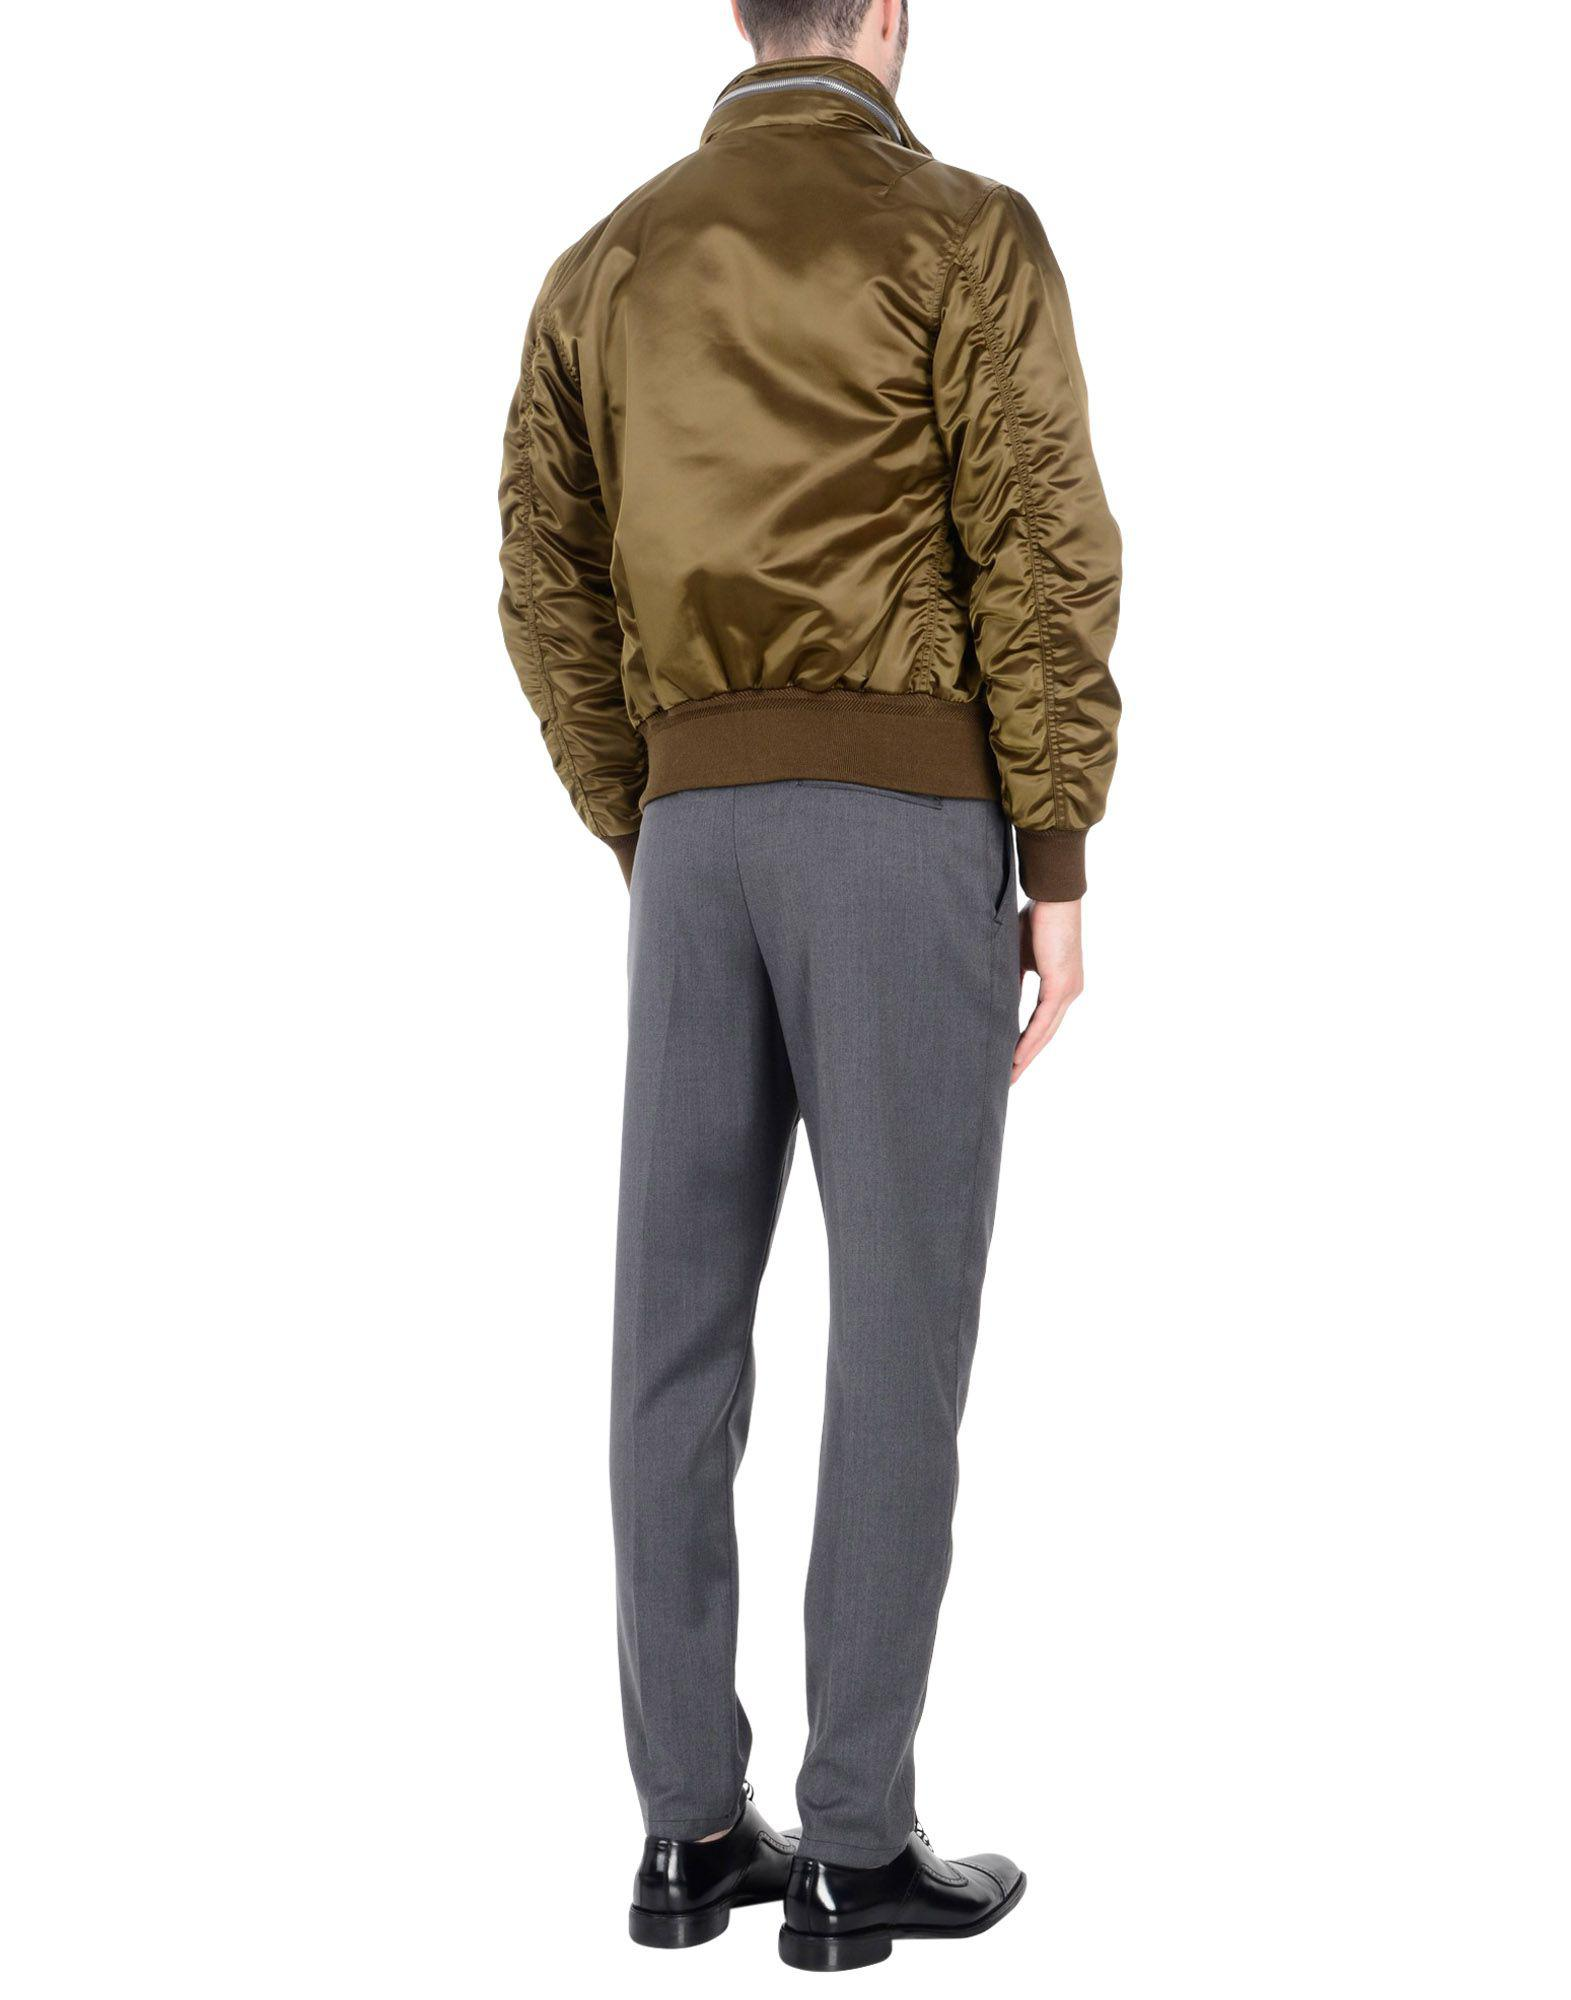 Burberry Synthetic Jacket in Military Green (Green) for Men